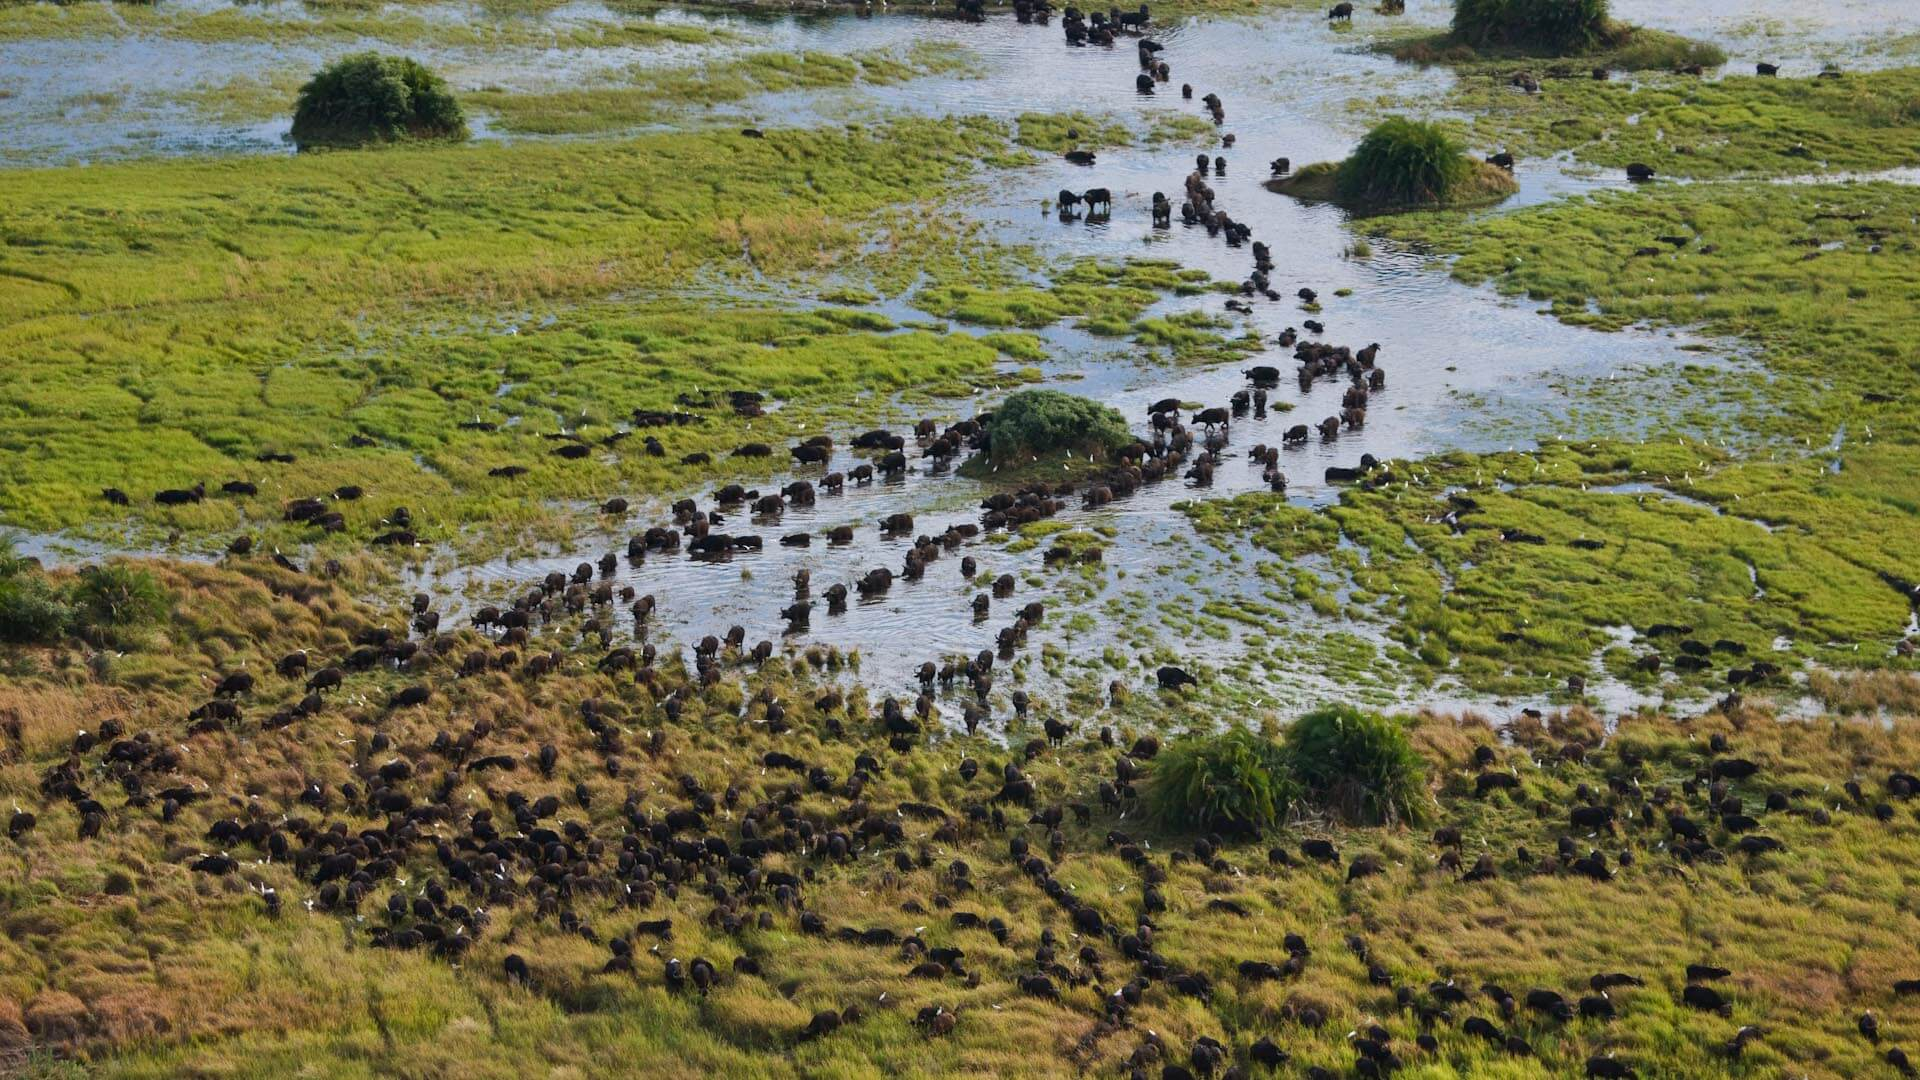 botswana duba plains camp aerial view of landscape wildebeest migrating safari destinations